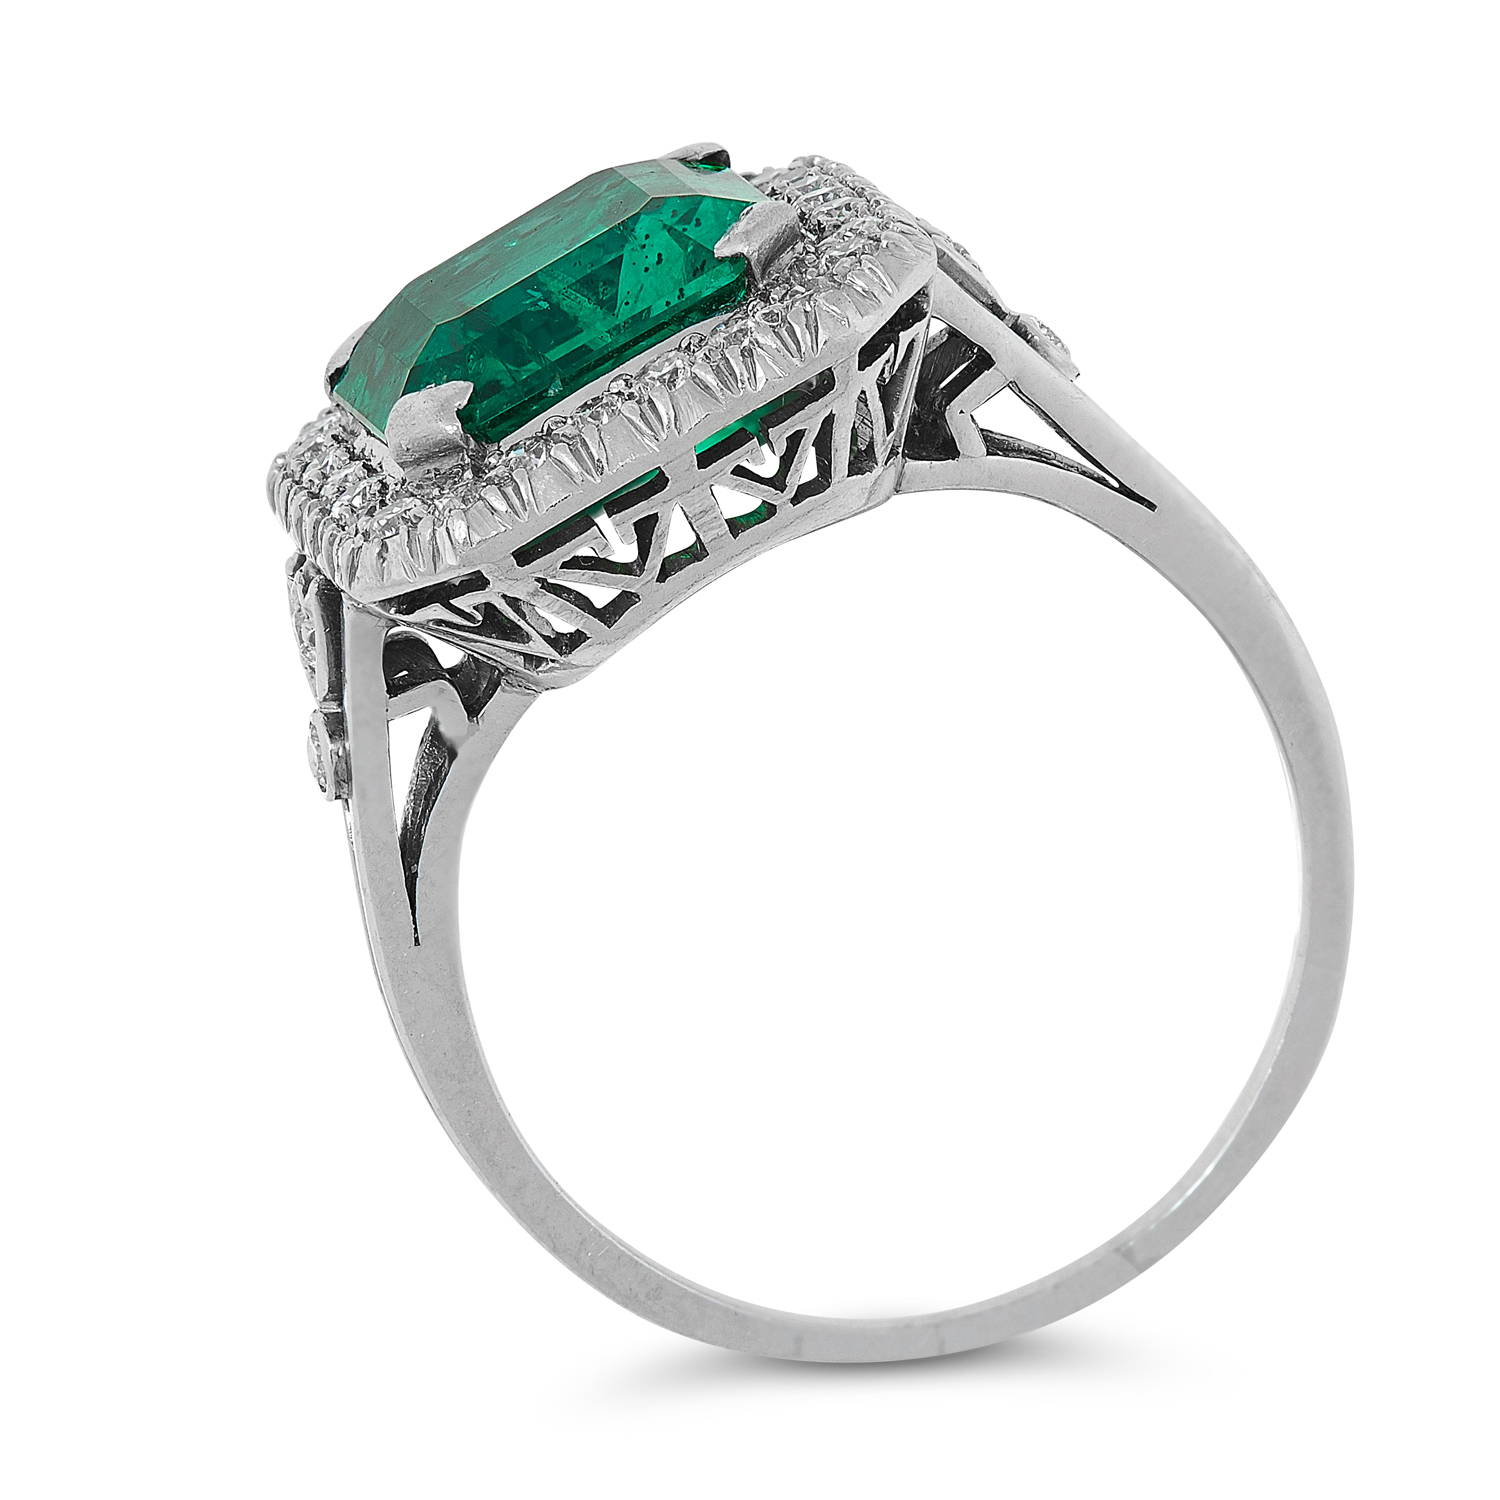 A COLOMBIAN EMERALD AND DIAMOND CLUSTER RING set with an emerald cut emerald of 2.84 carats in a - Image 2 of 2